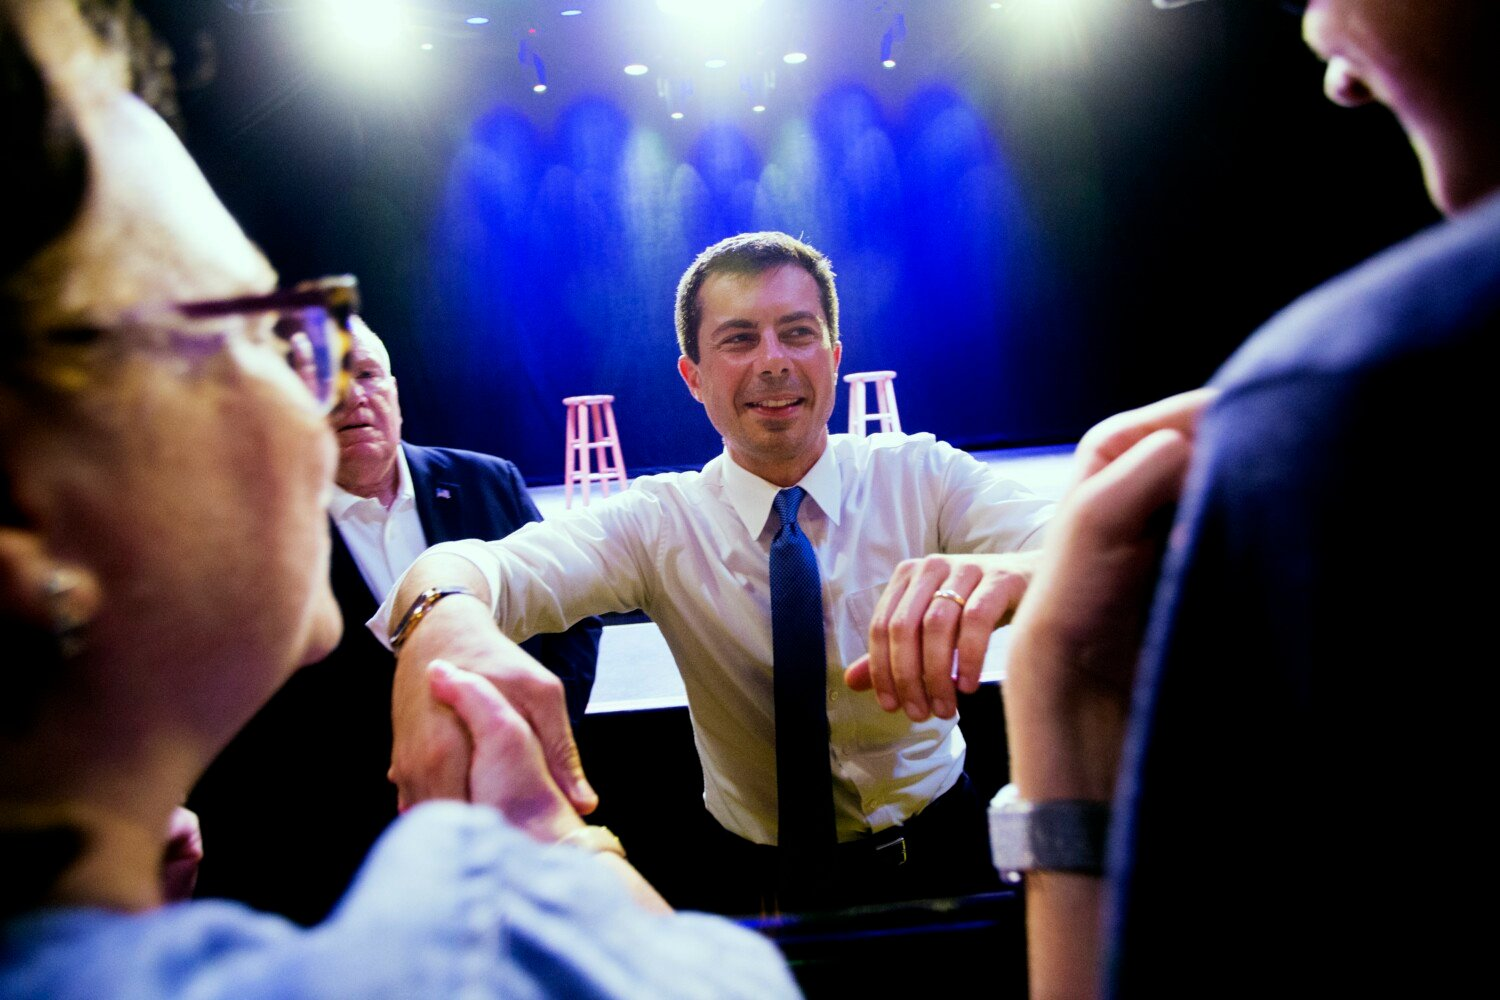 Pete Buttigieg greets supporters after speaking during his fundraiser Aug. 22 night at Portland's State Theater.